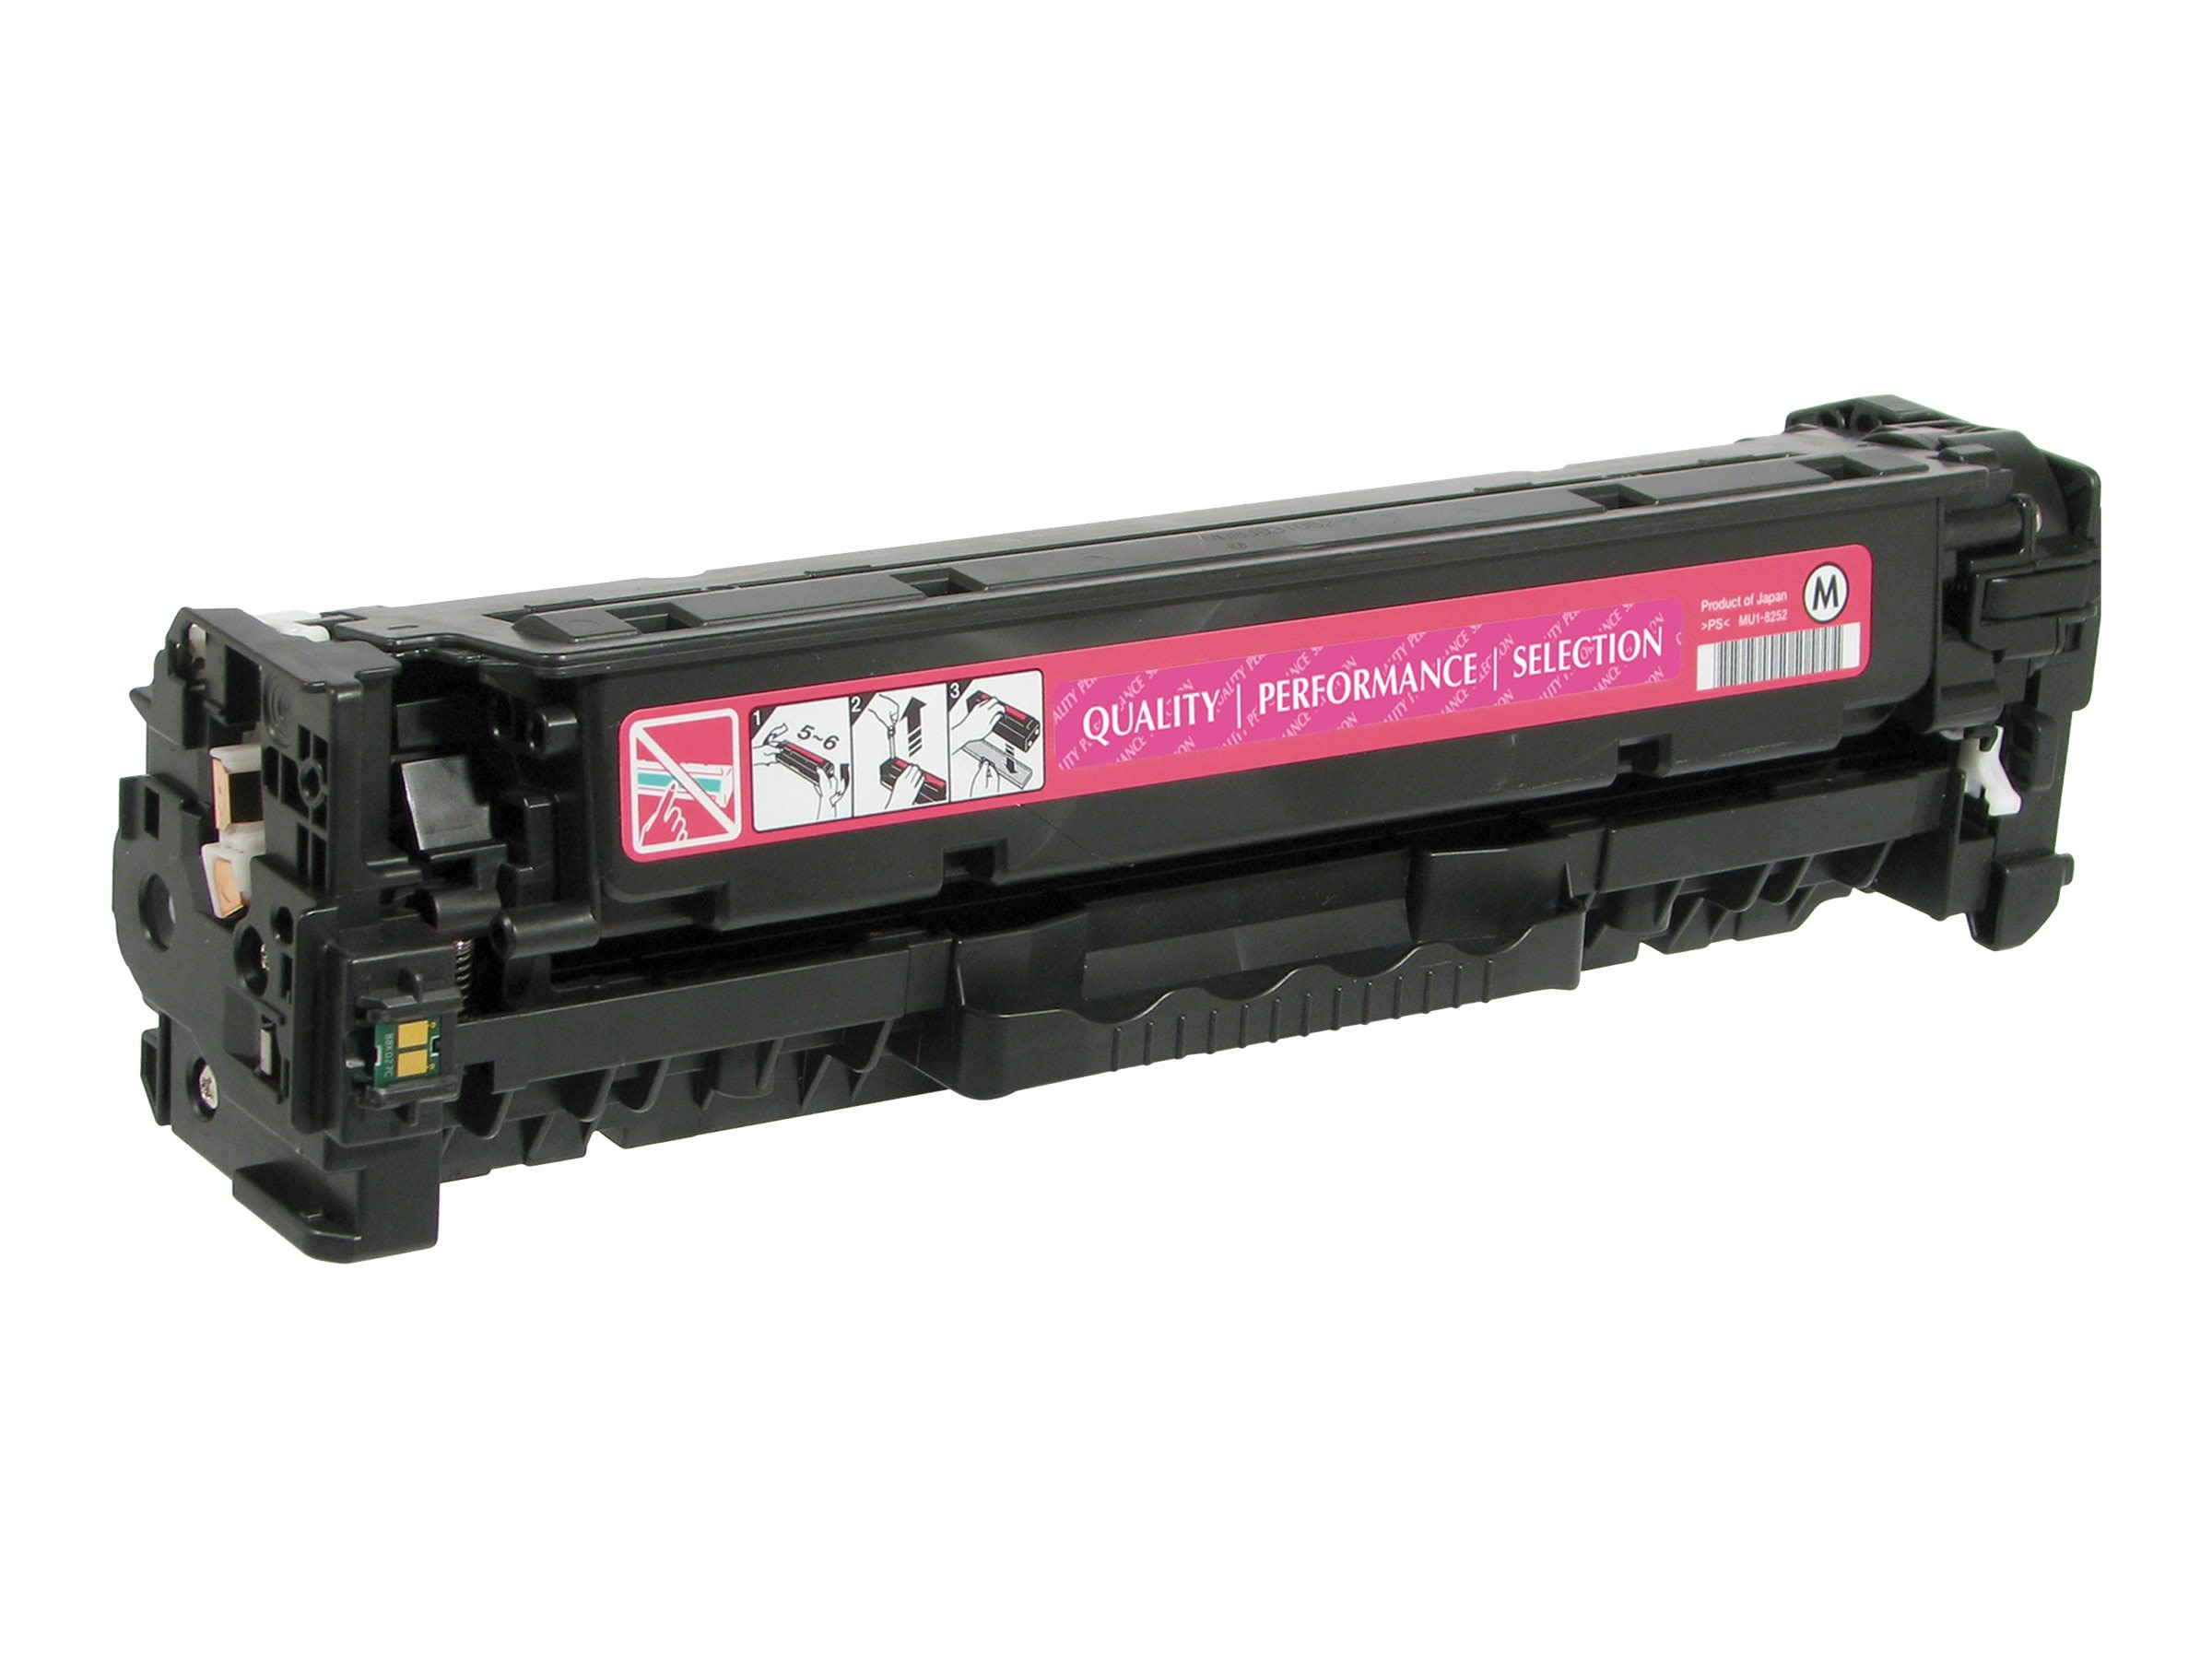 V7 CE413A Magenta Toner Cartridge for HP LaserJet Pro Color M375 M451